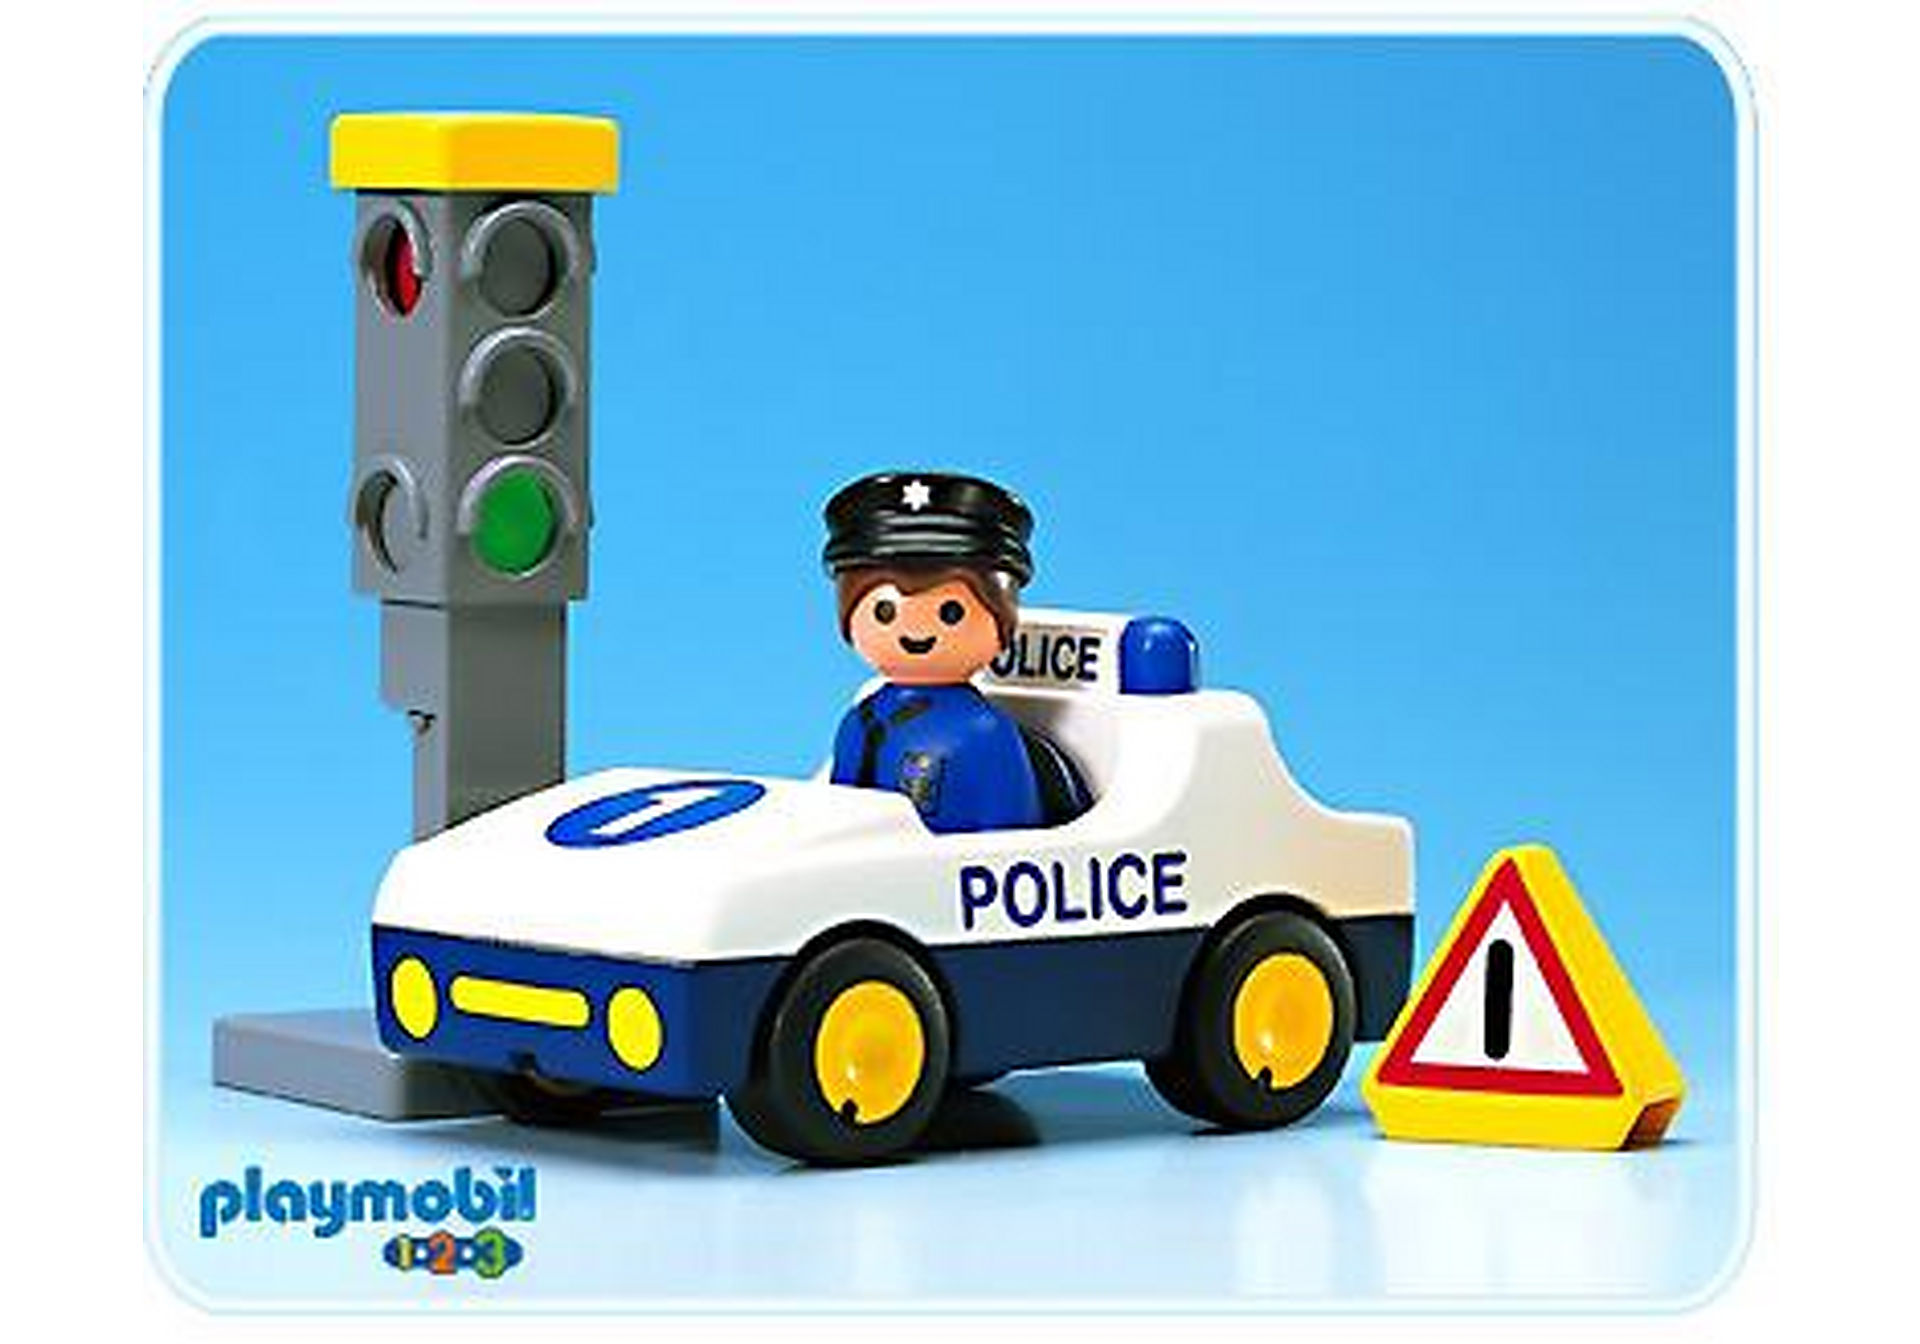 http://media.playmobil.com/i/playmobil/6709-A_product_detail/Polizei-PKW